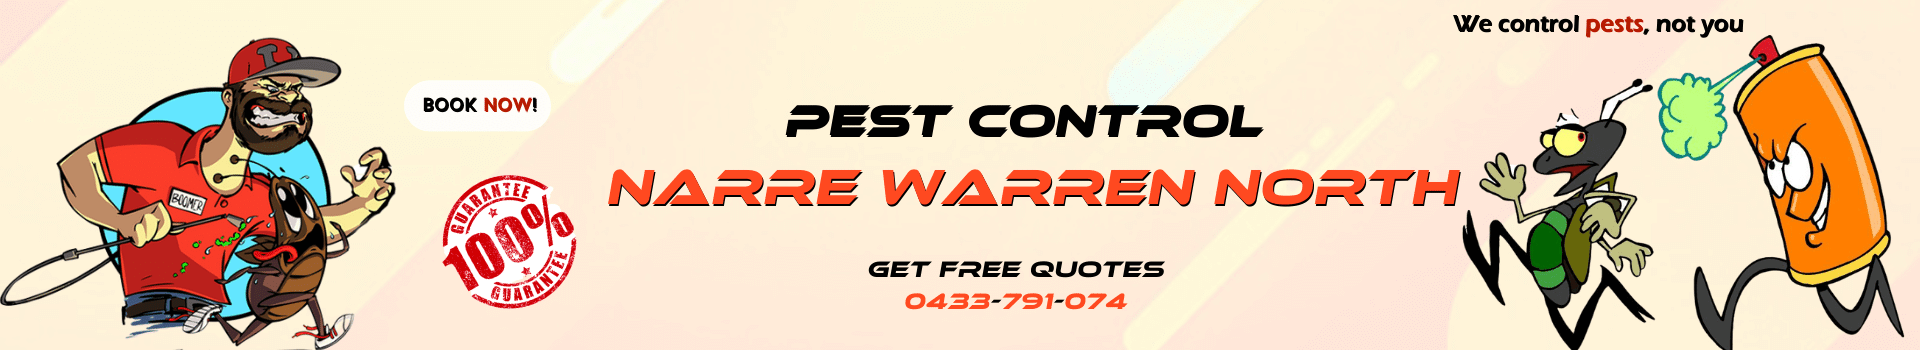 Pest Control Narre Warren North